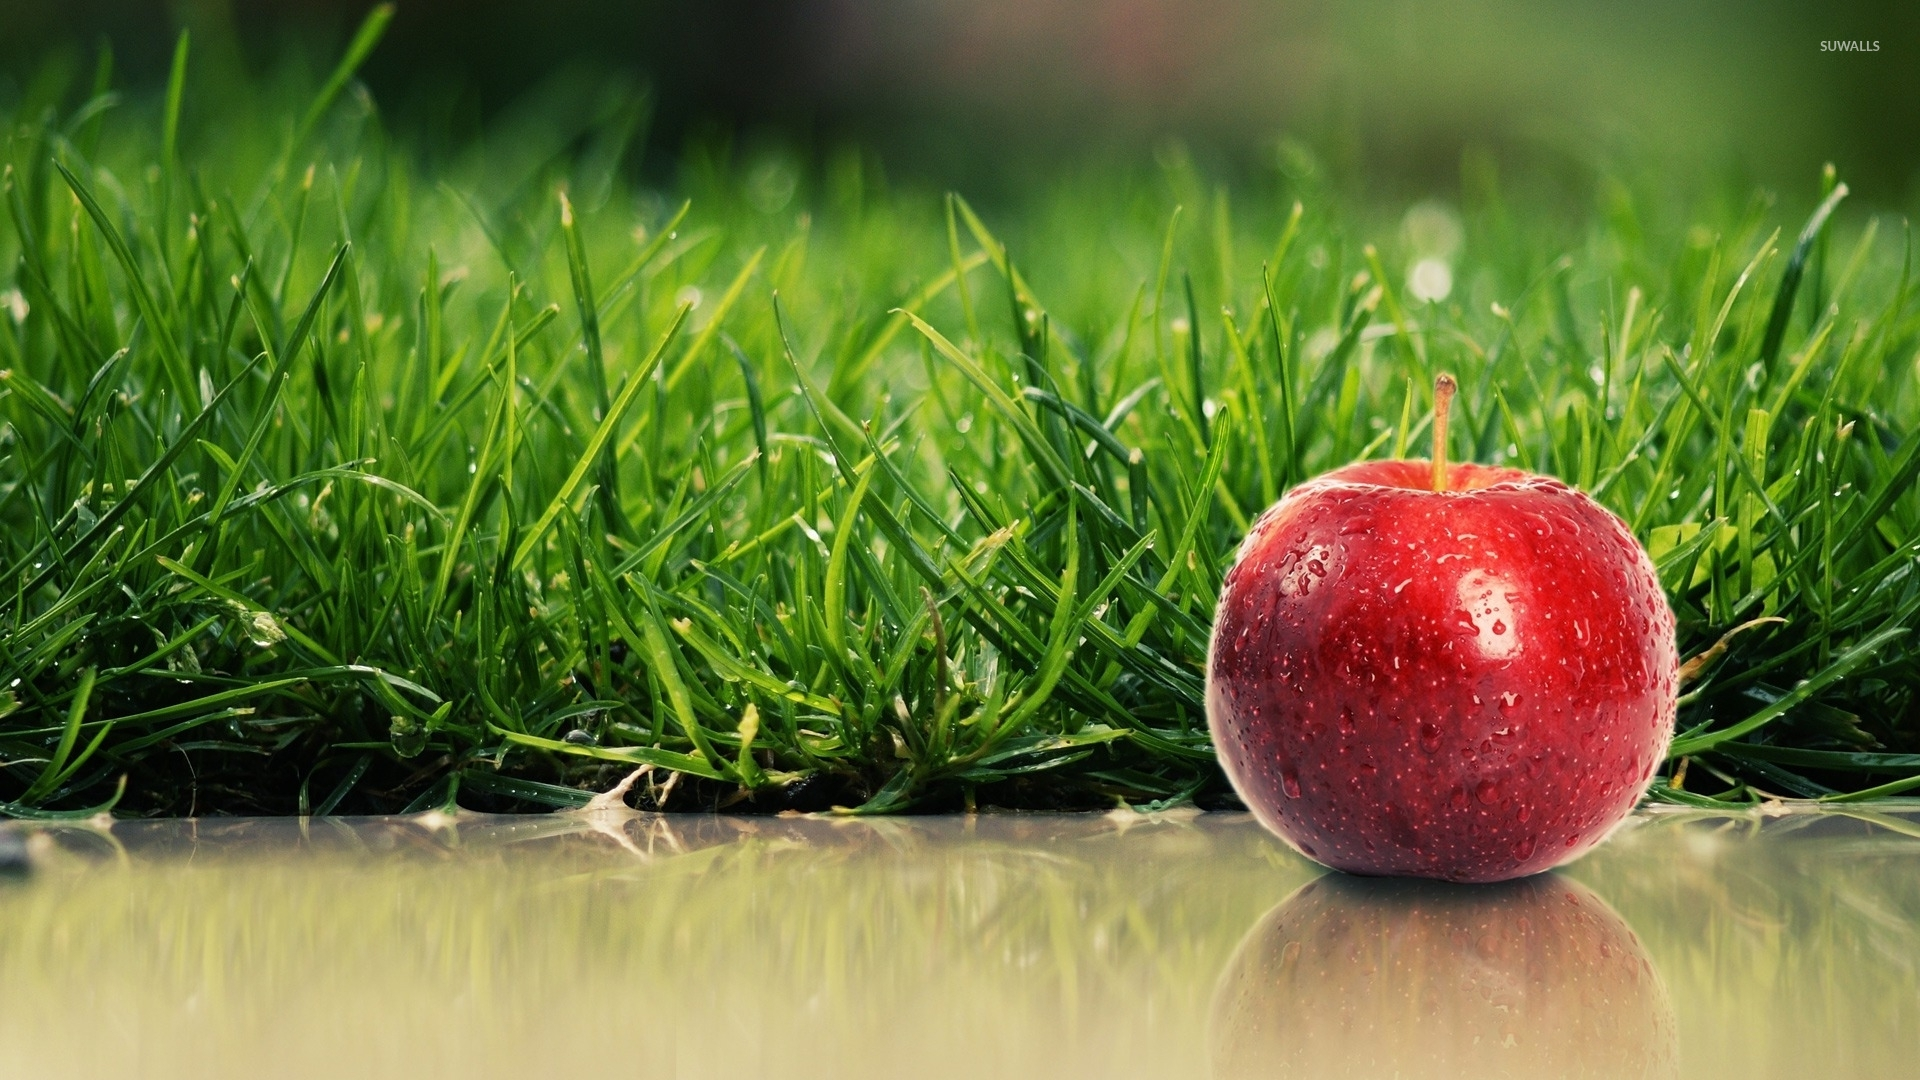 Red Apple With Water Drops By The Green Grass Wallpaper